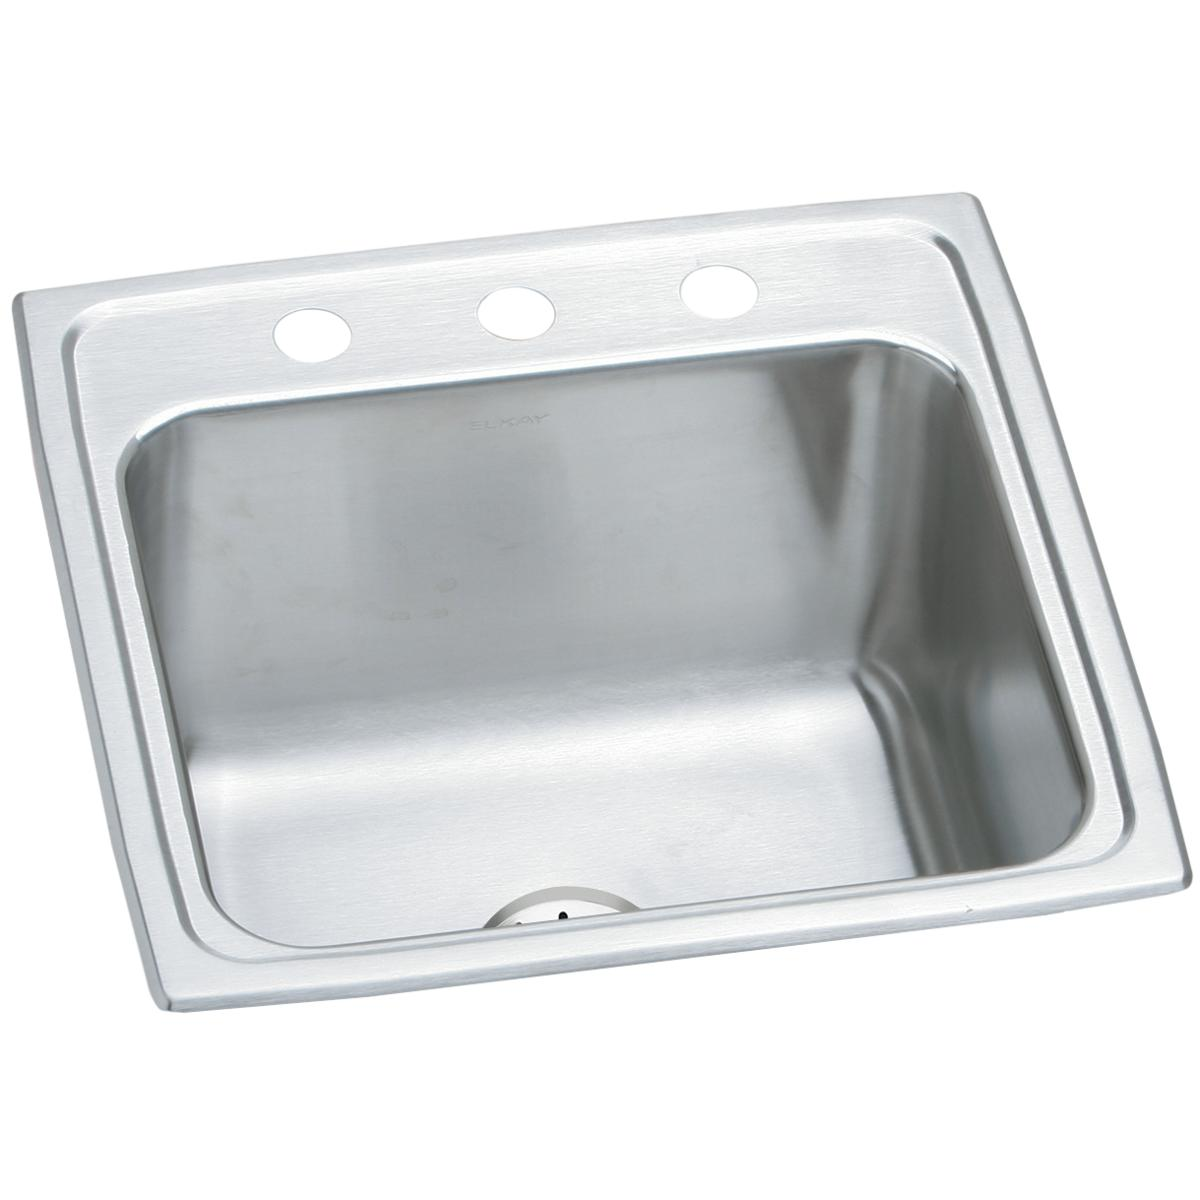 "Elkay Lustertone Classic Stainless Steel 19-1/2"" x 19"" x 10-1/8"", Single Bowl Drop-in Laundry Sink w/Perfect Drain"